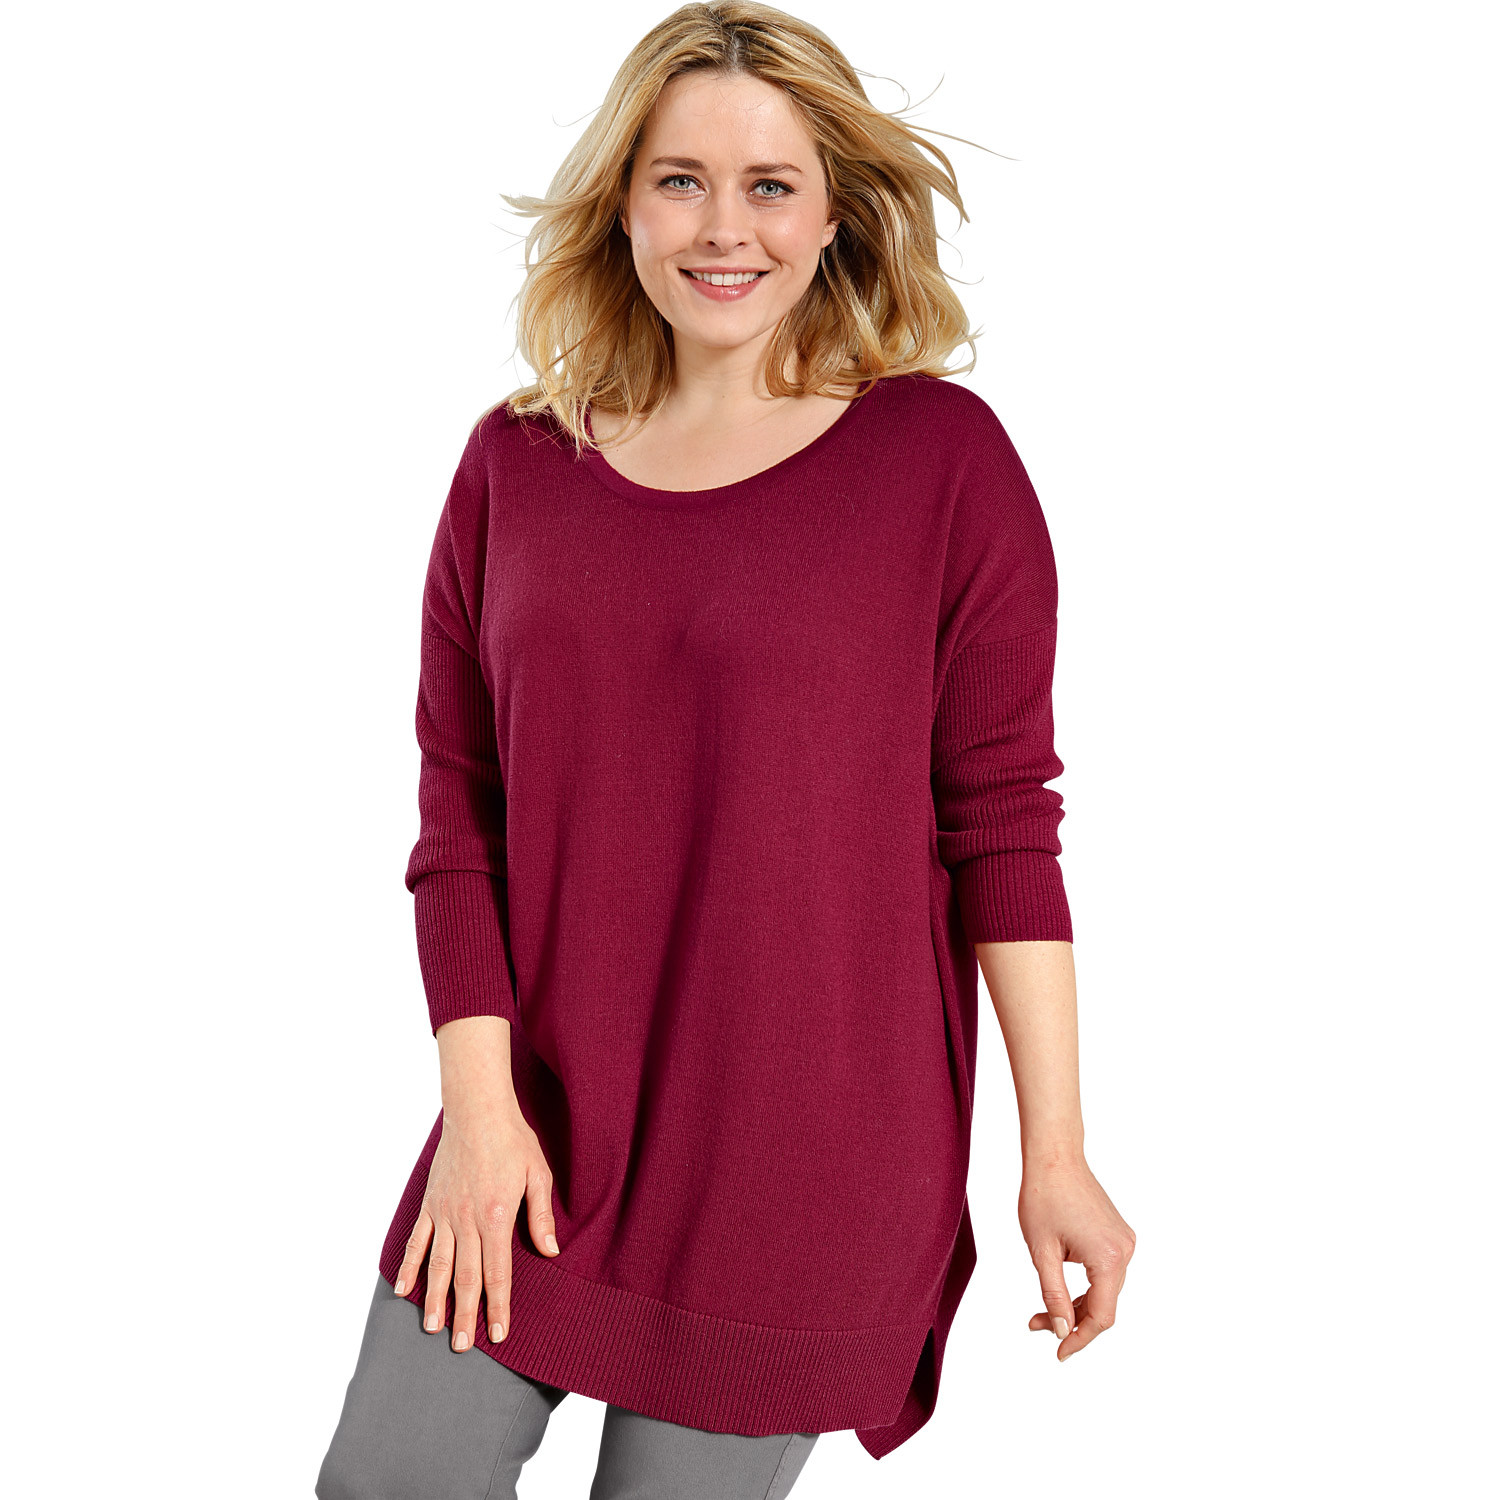 Oversized-Pullover, himbeere